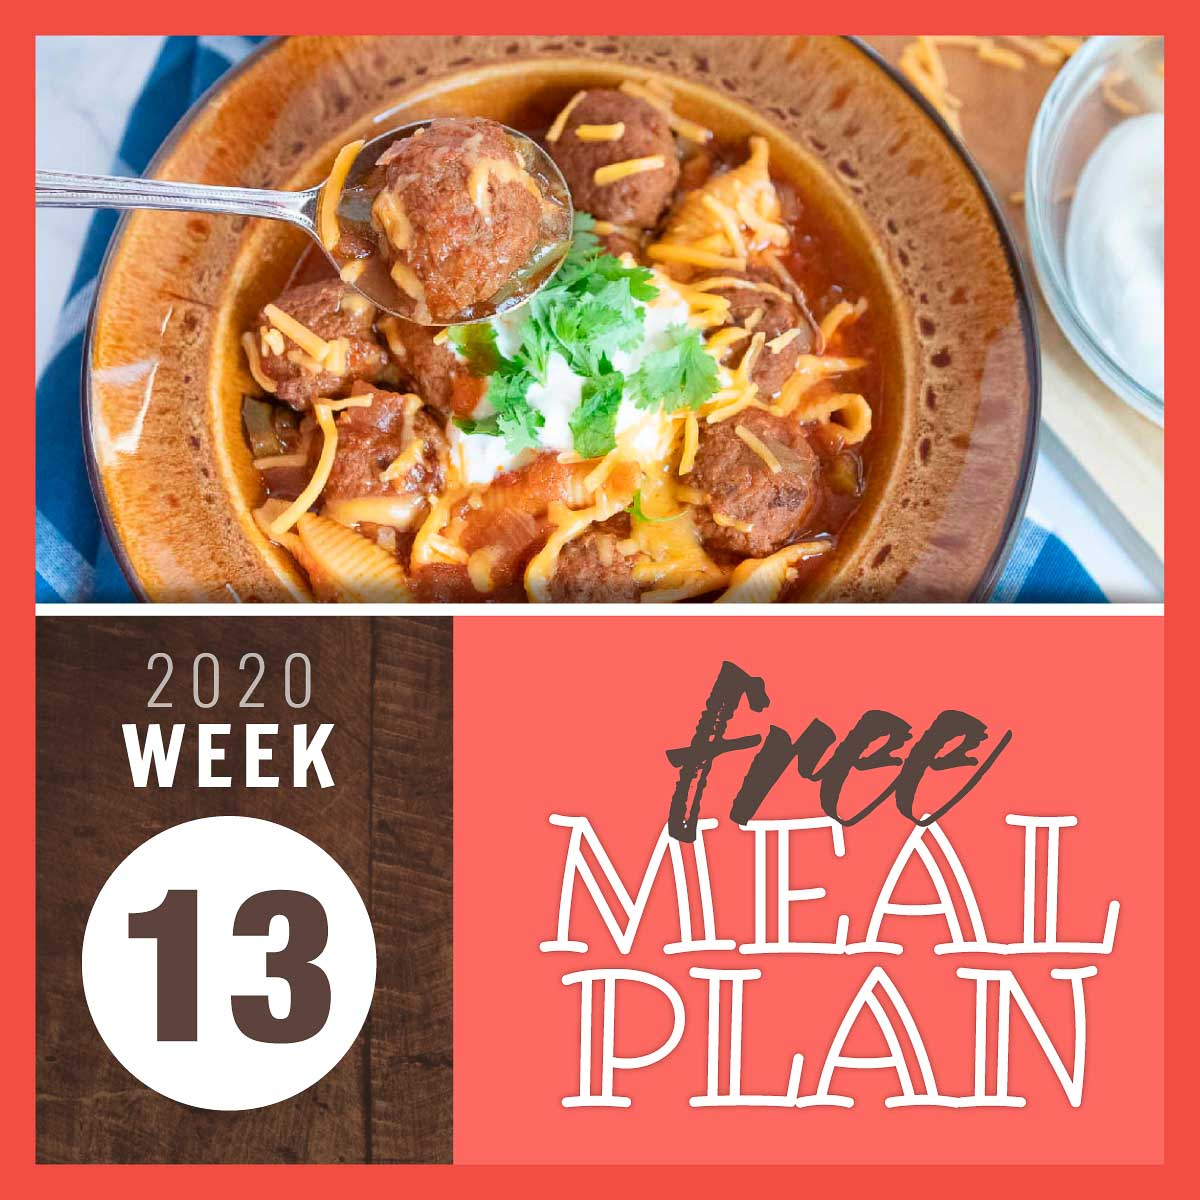 Image of bowl with meatballs and pasta garnished with cheese, sour cream, and cilantro with text Free meal plan week 13 2020